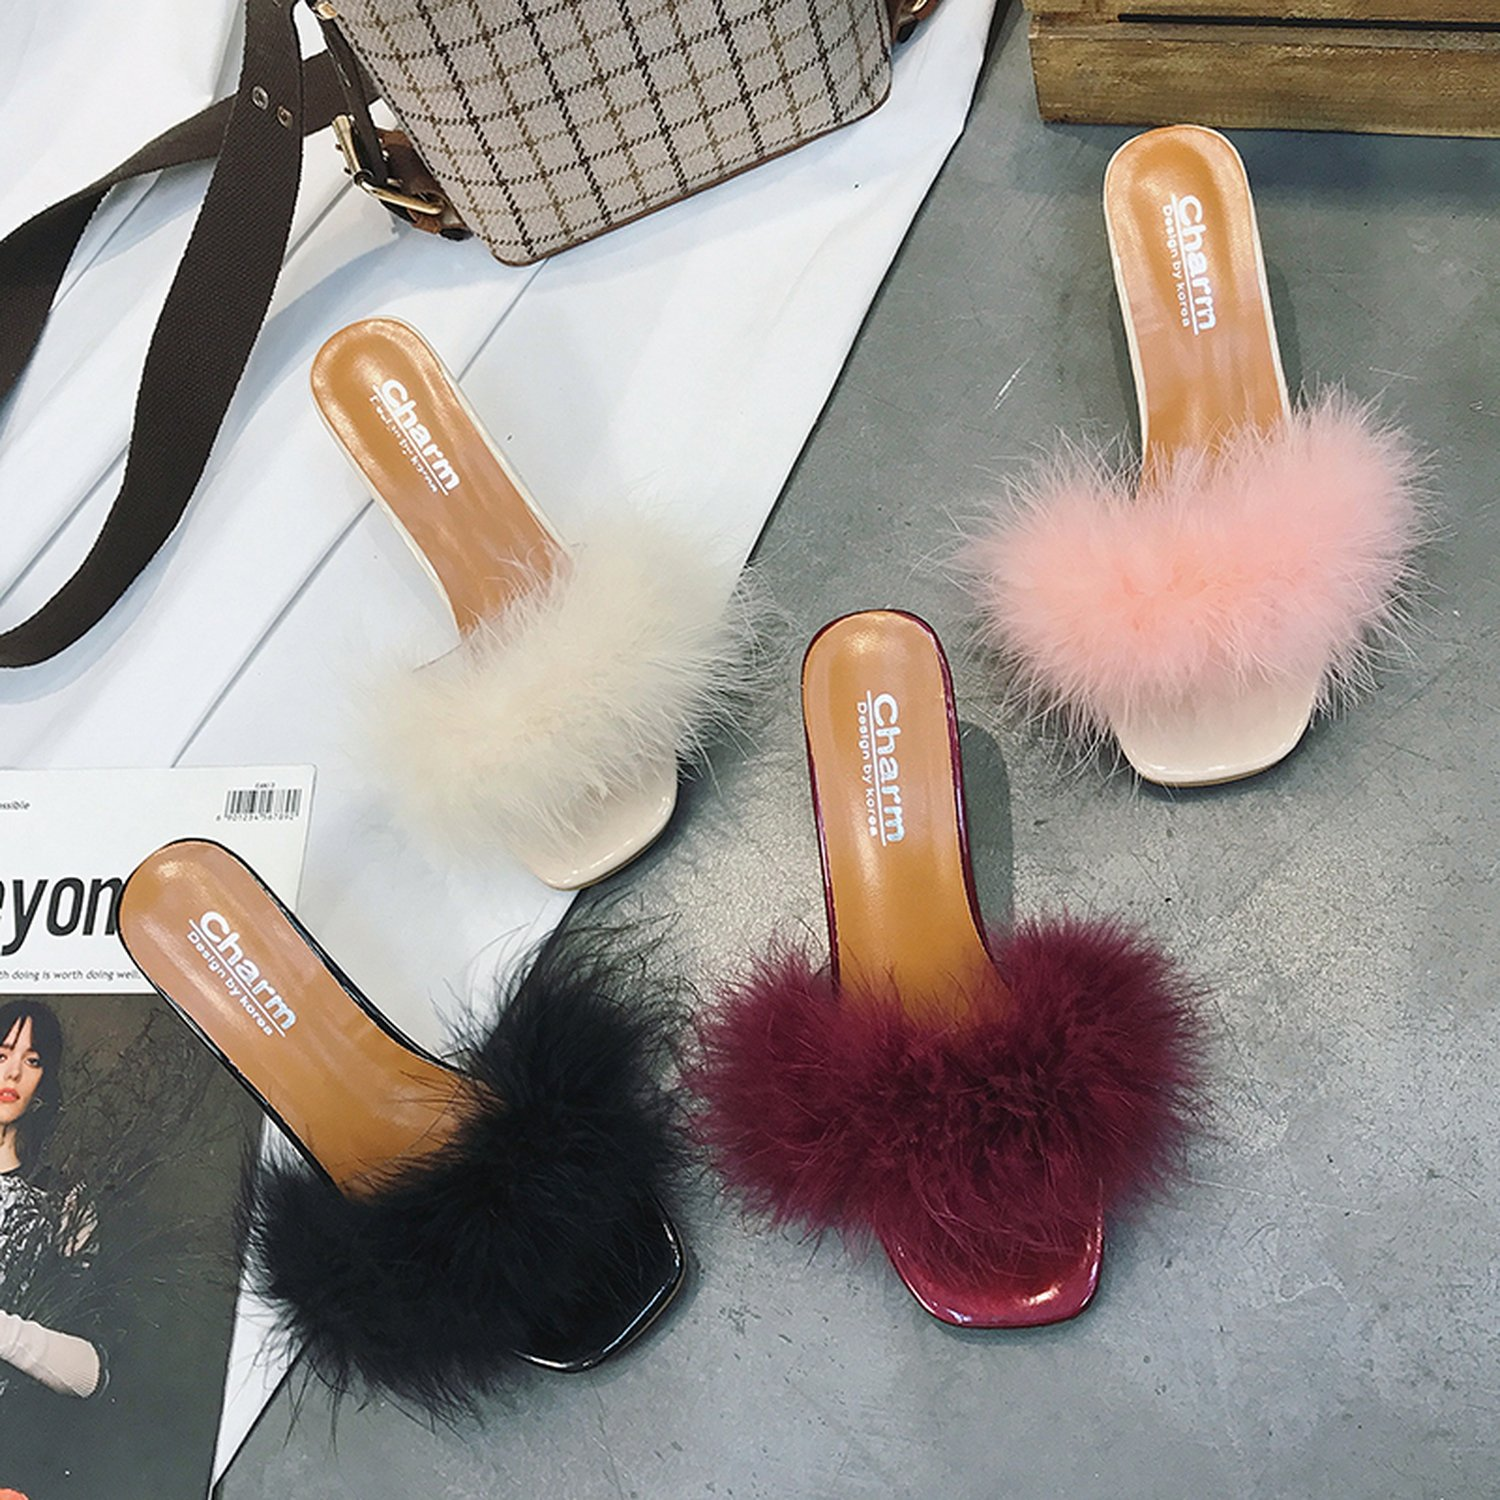 Kingwhisht Faux Fur Slippers Outdoor Slides Leisure Colors Dress Parties 6Cm Heels Shoes